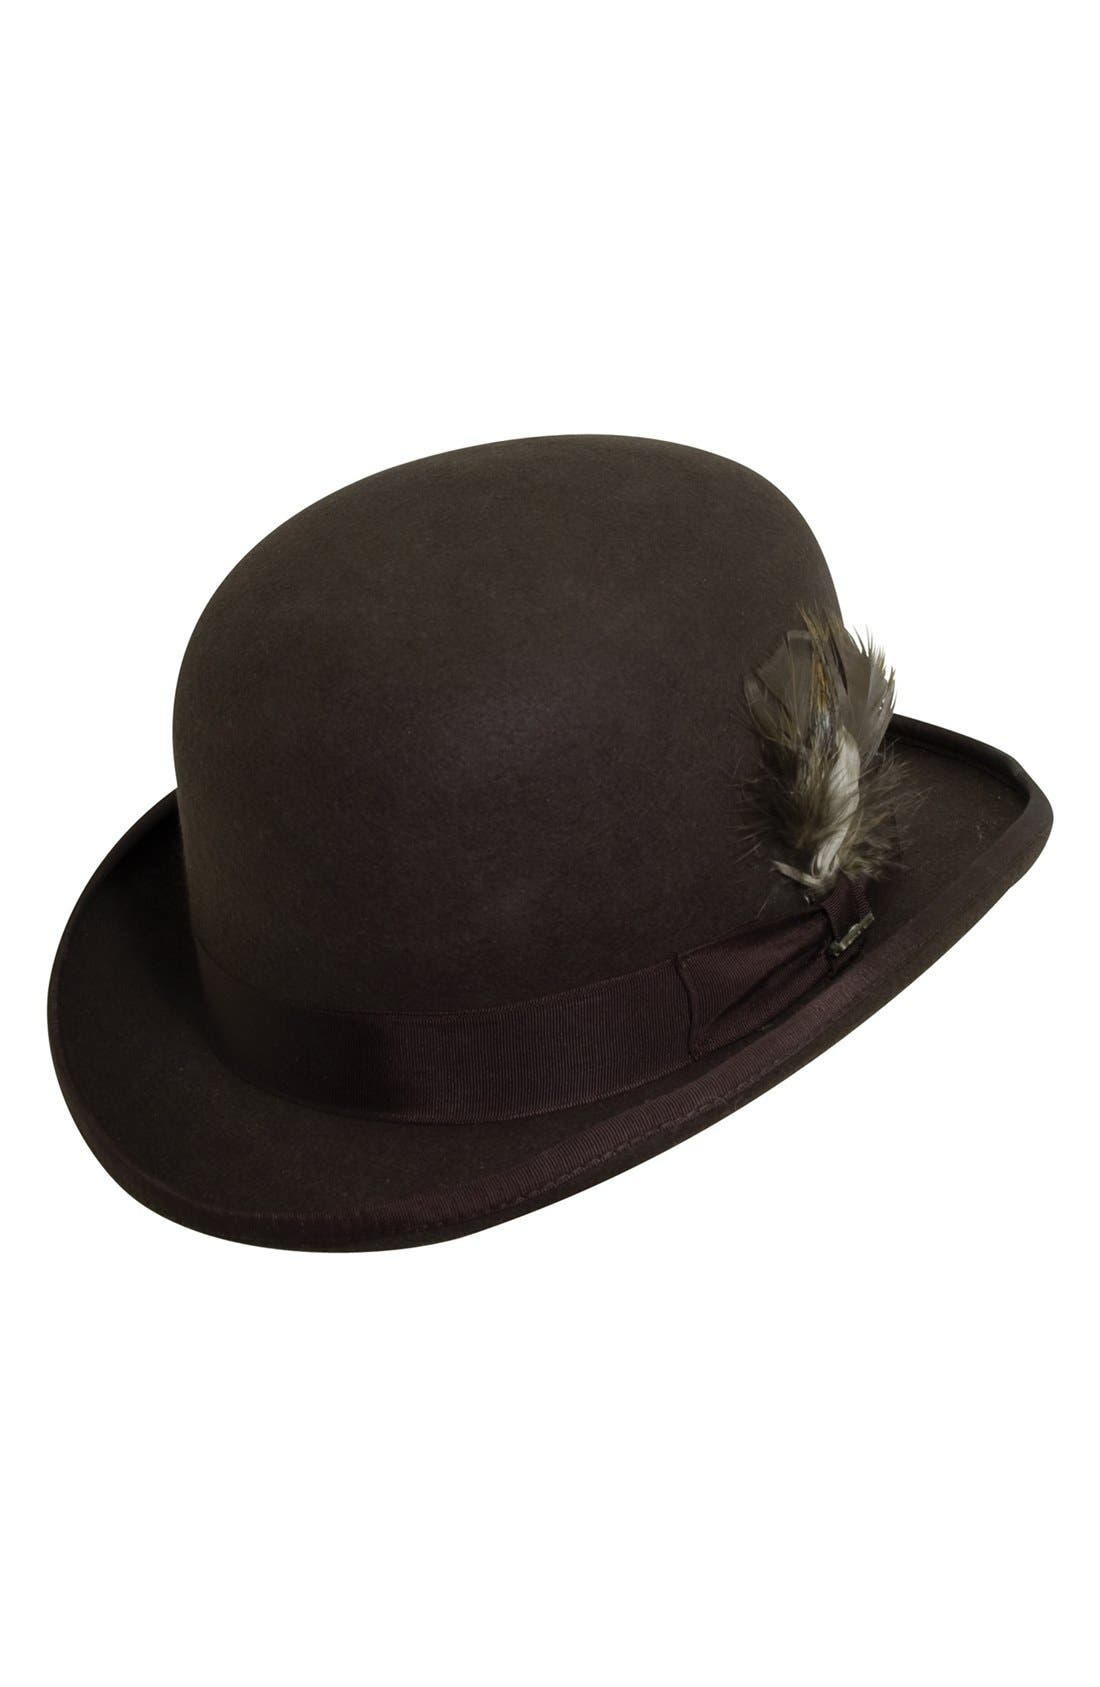 Alternate Image 1 Selected - Scala 'Classico' Wool Felt Derby Hat